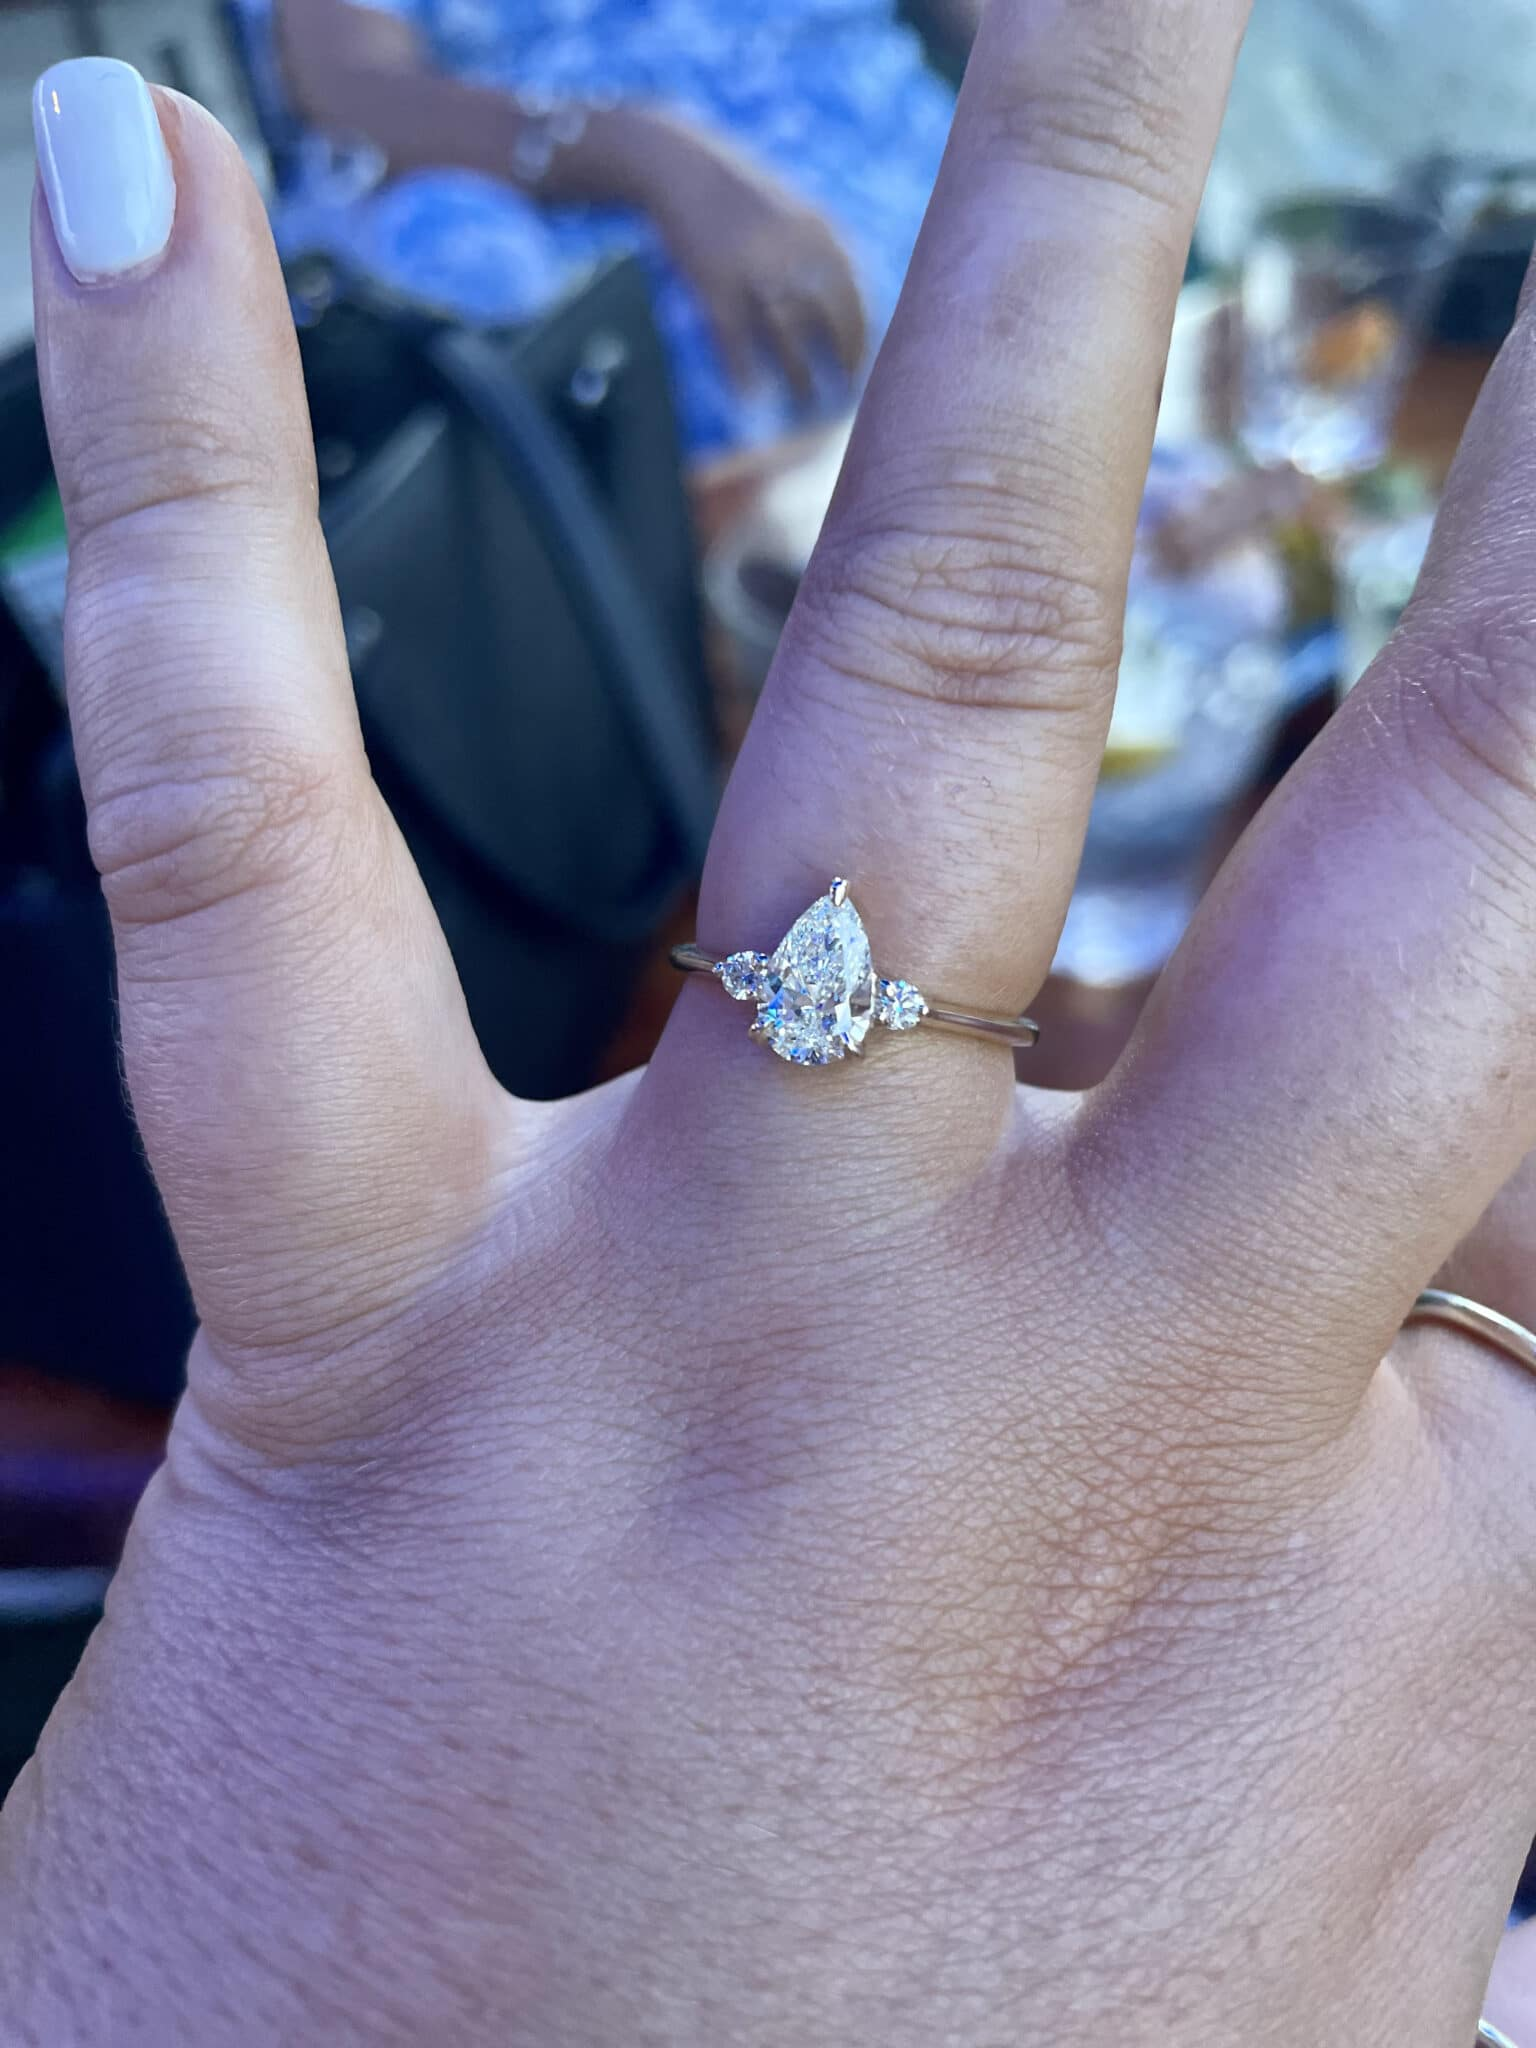 bride to be showing off her left hand with her new engagement ring on her ring finger